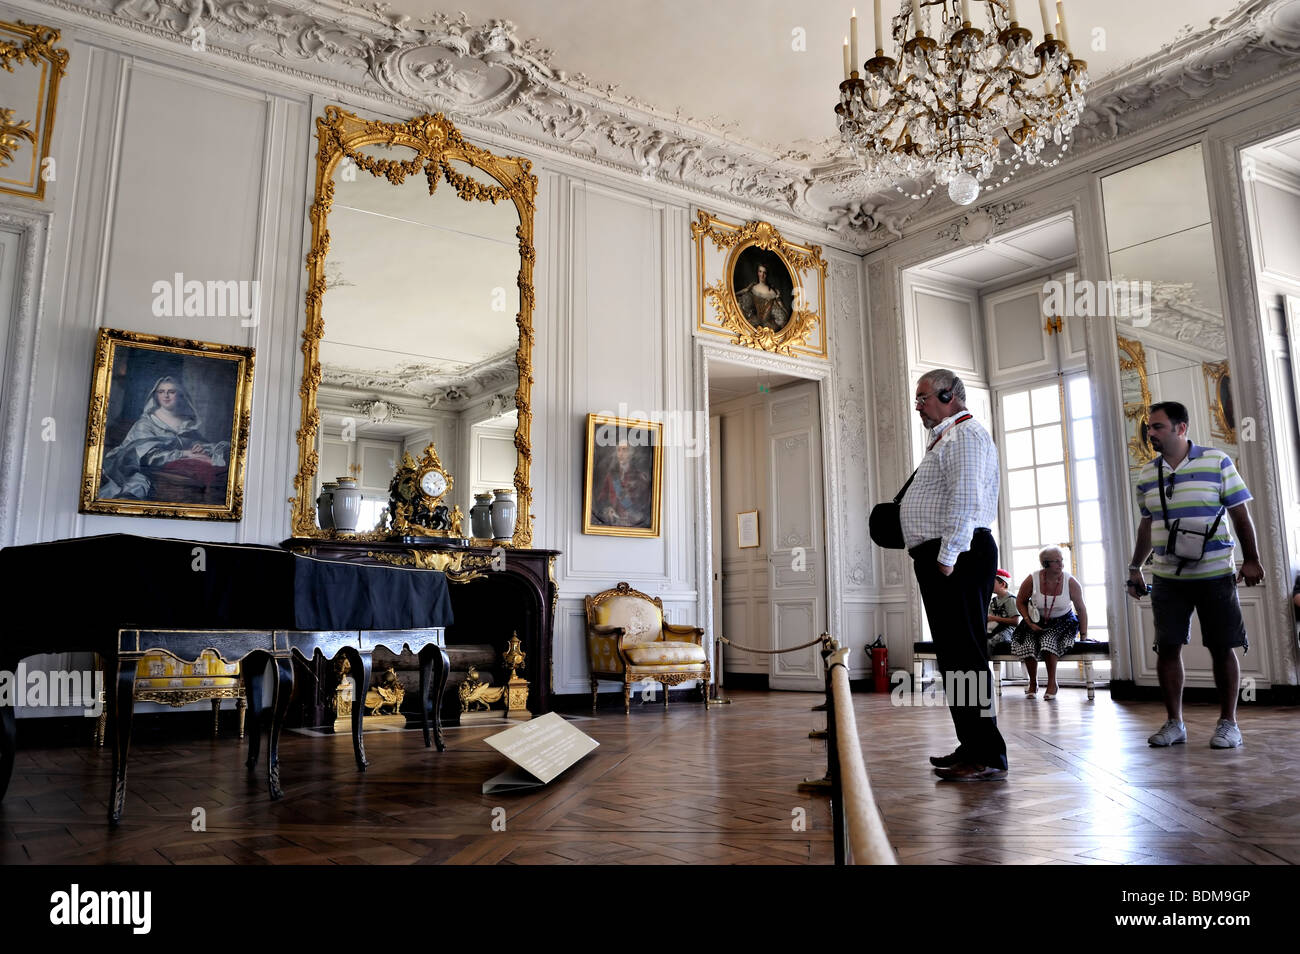 Music Room French Art Palace Stockfotos & Music Room French Art ...